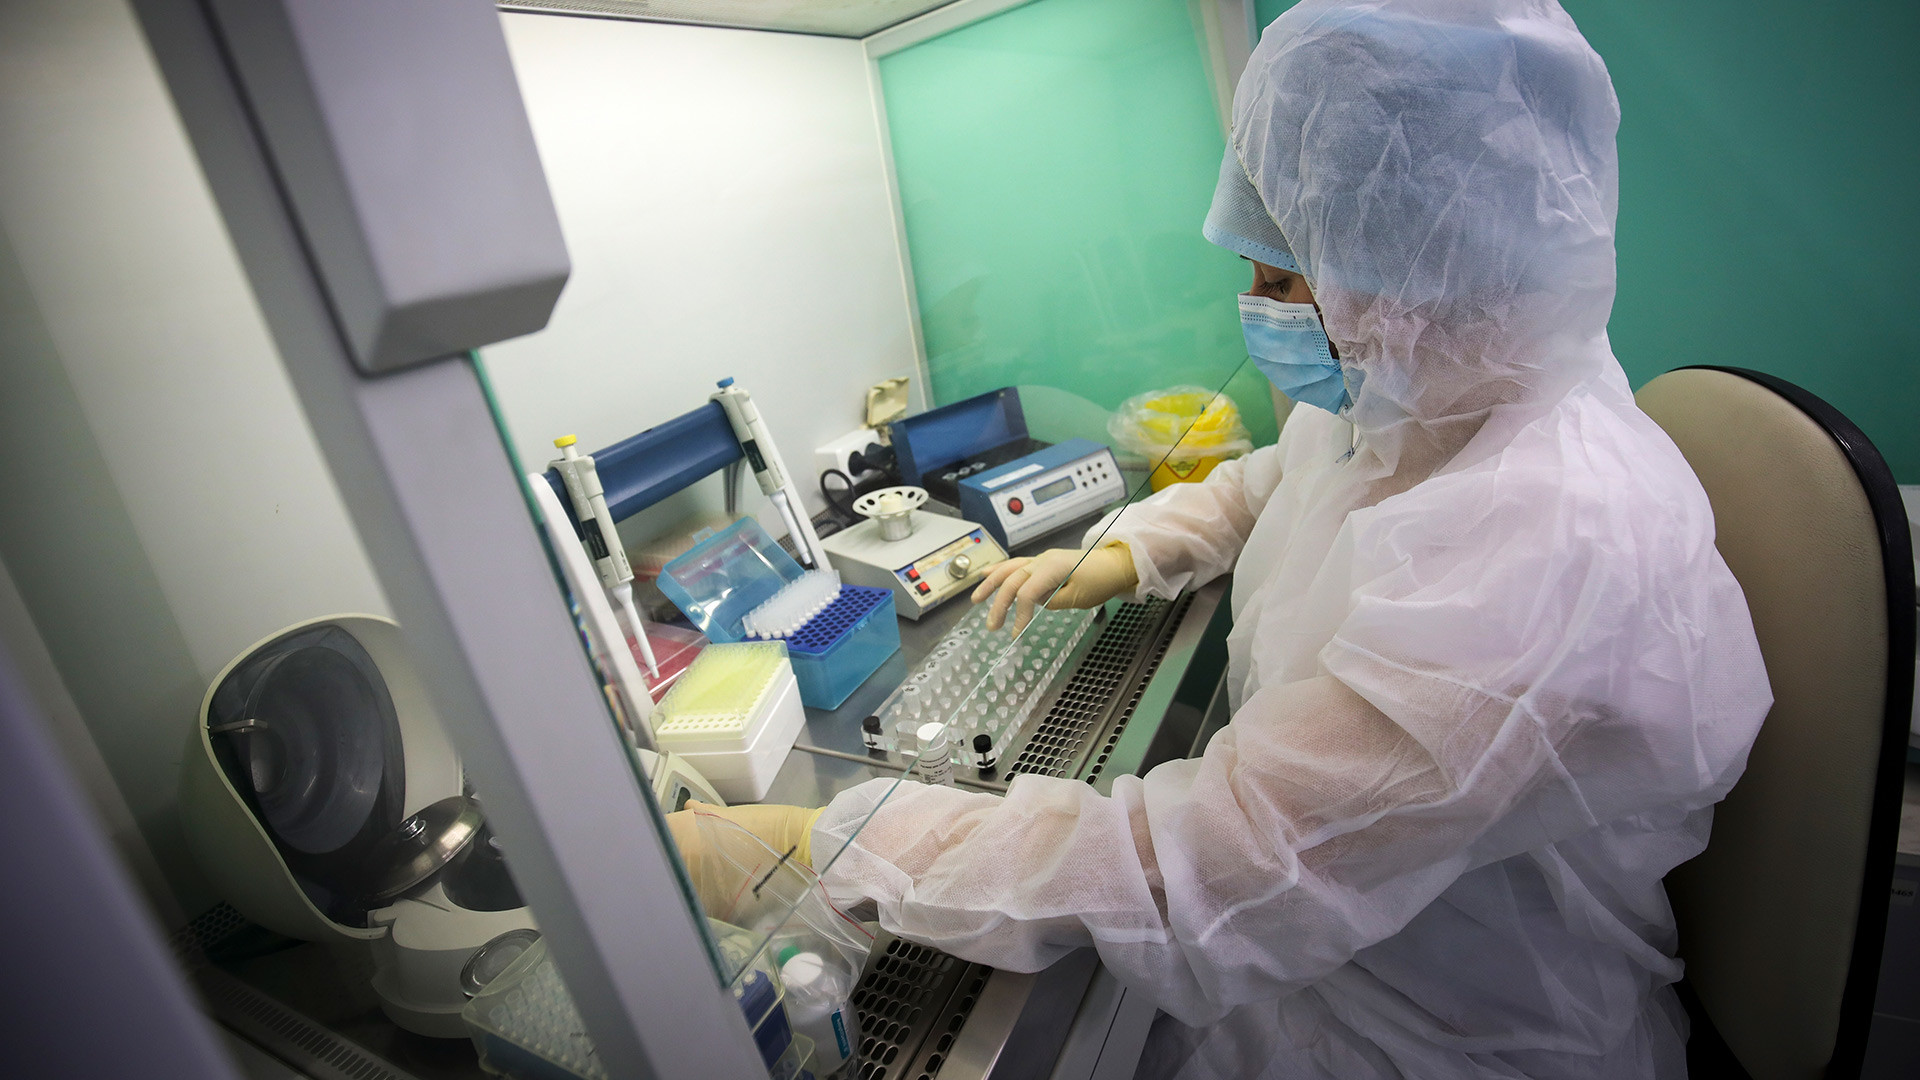 A medical staffer works with test systems for the diagnosis of coronavirus, at the Krasnodar Center for Hygiene and Epidemiology microbiology lab in Krasnodar, Russia